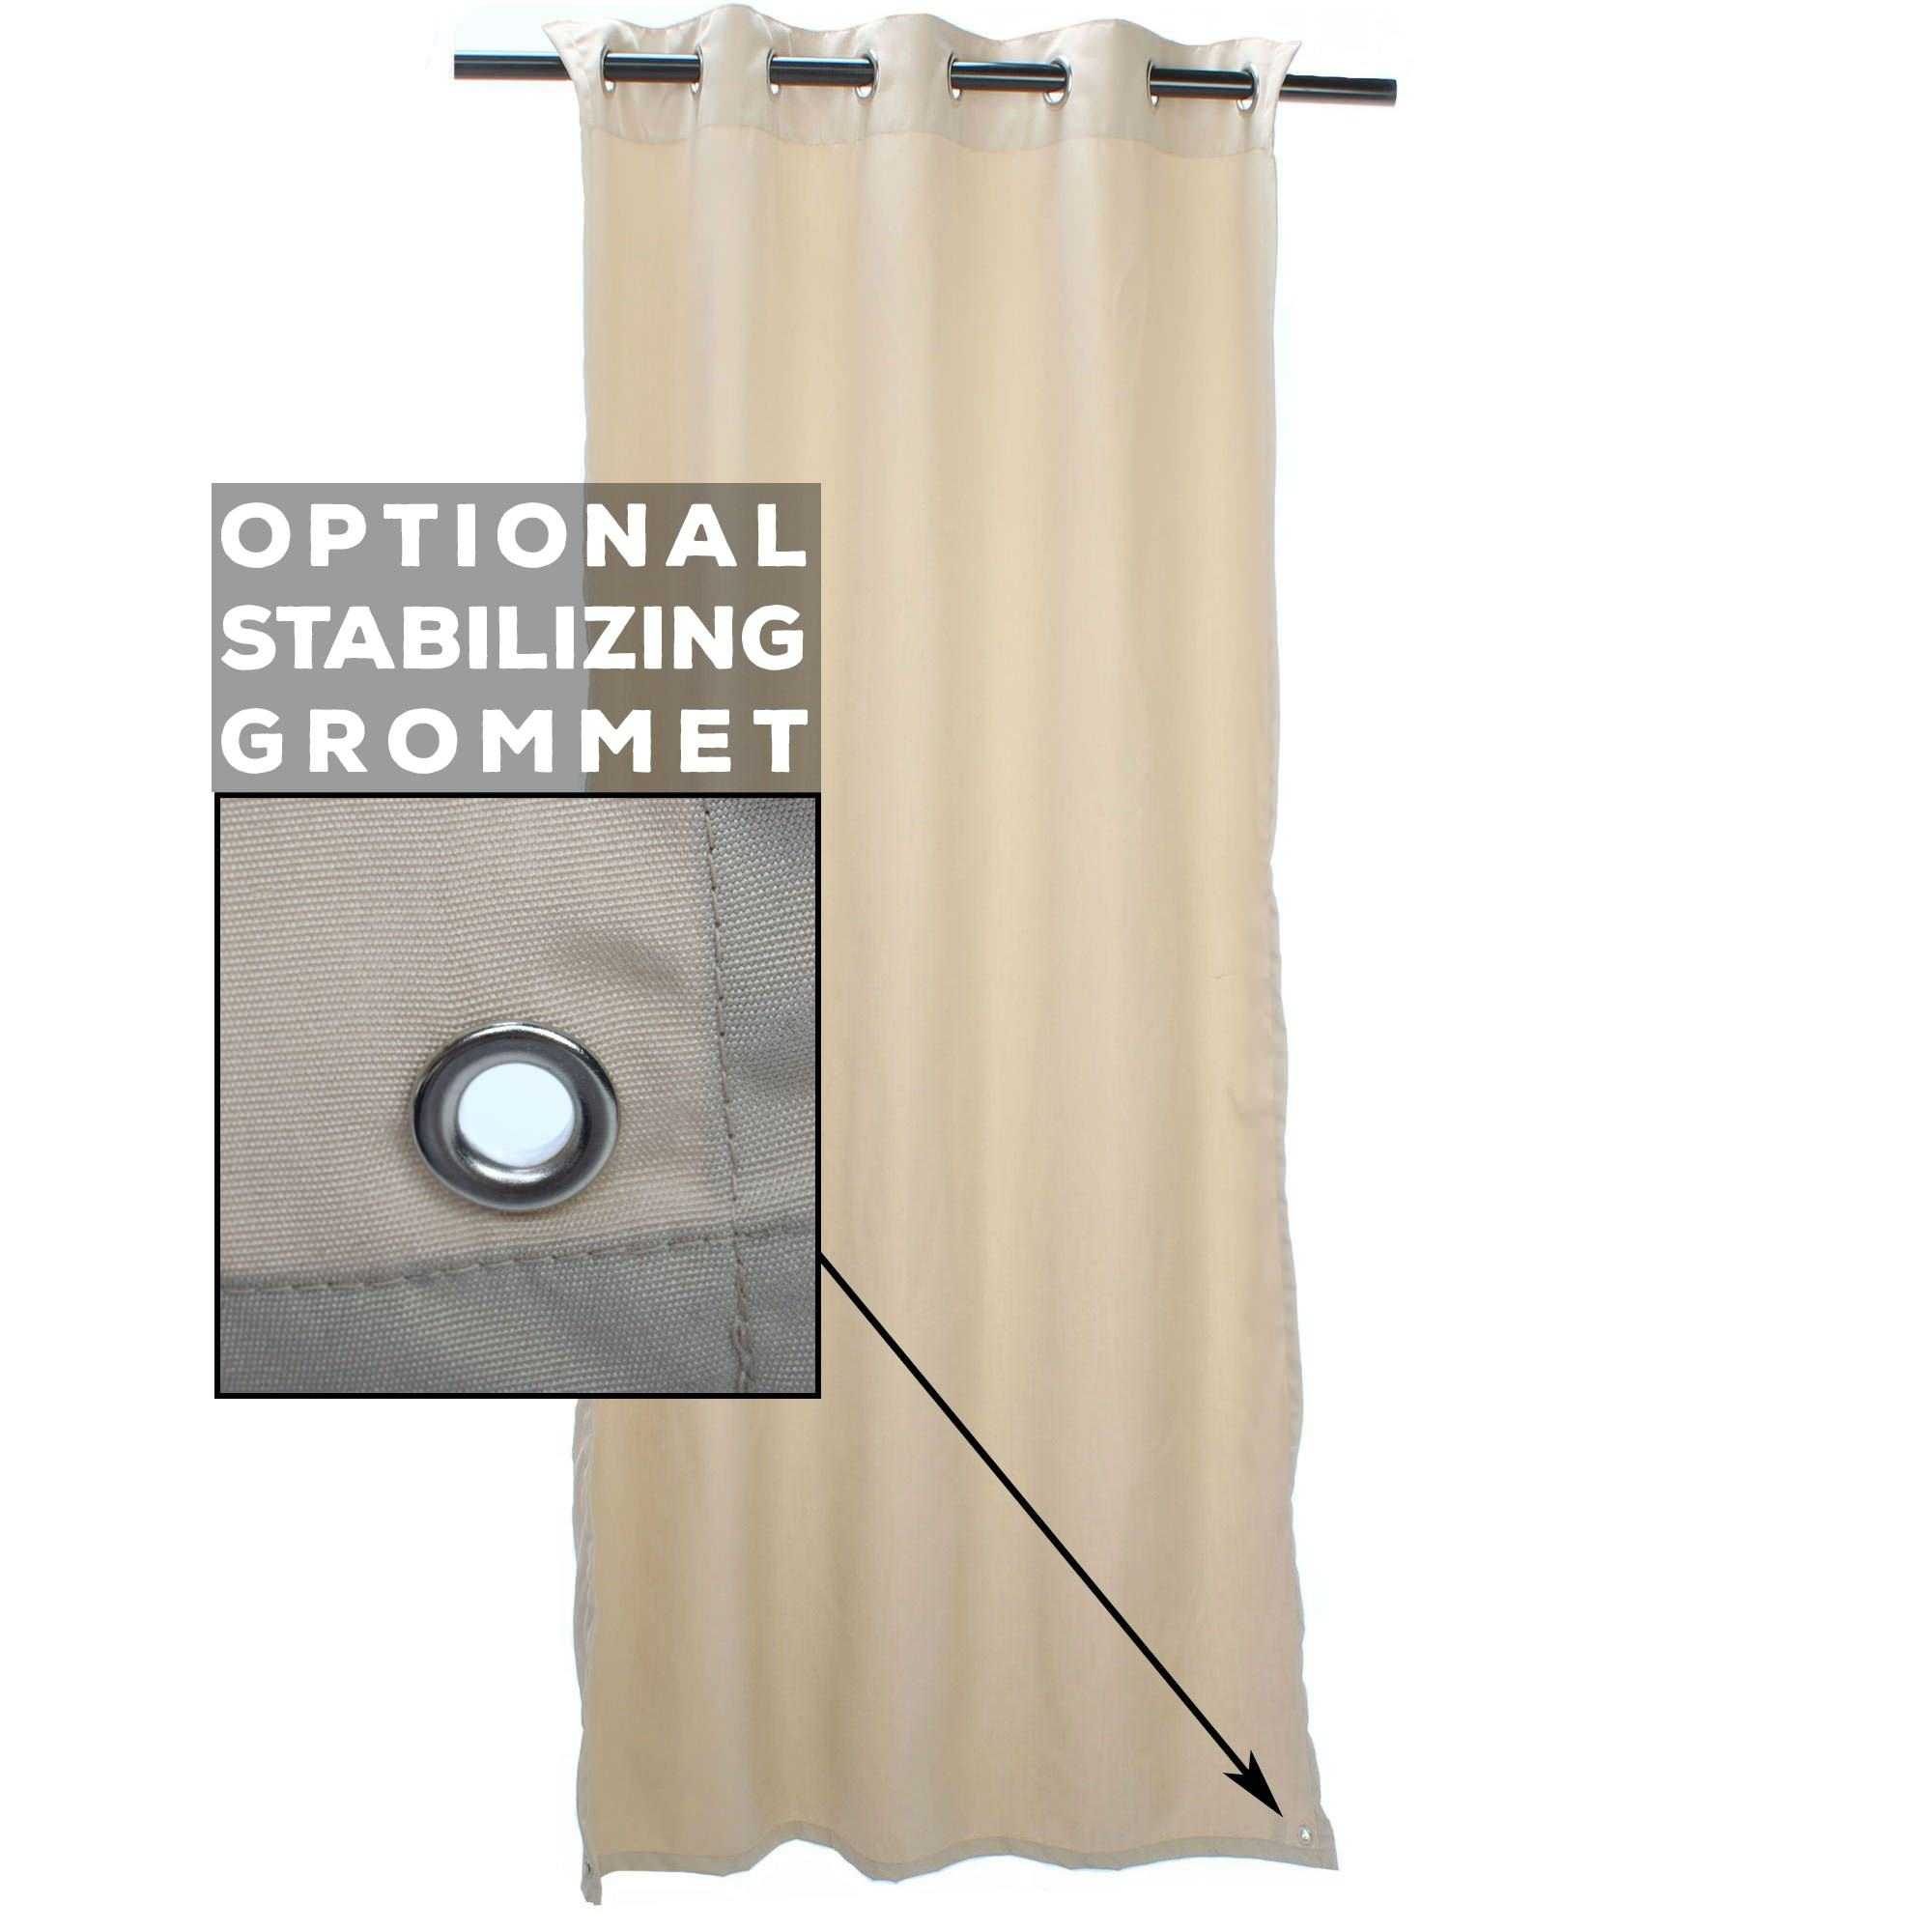 Bay Brown Sunbrella Outdoor Curtain with Tabs by Essentials by DFO